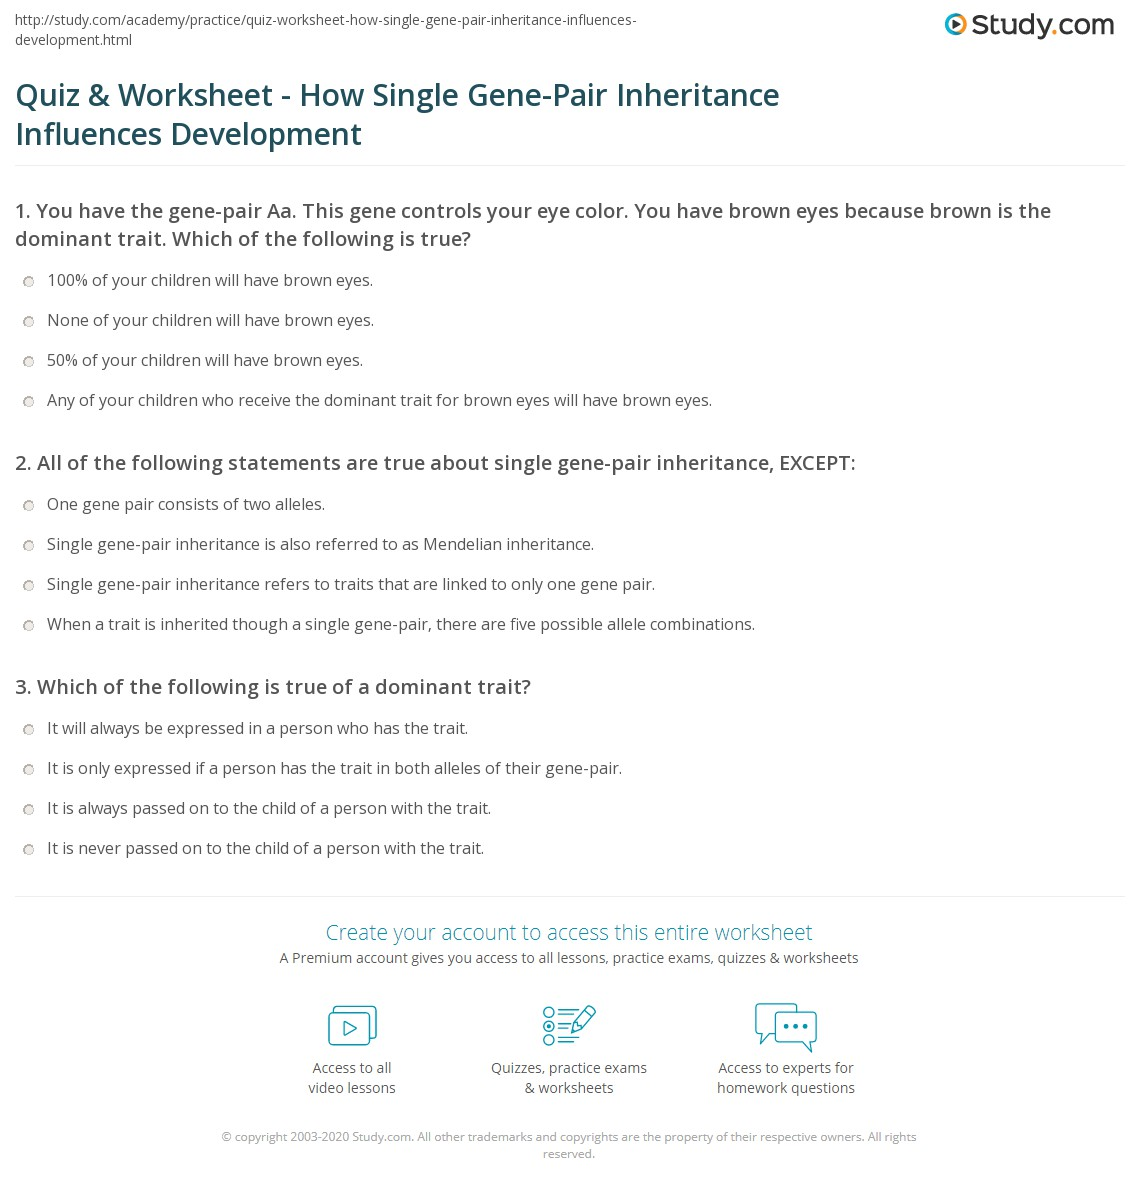 quiz worksheet how single gene pair inheritance influences development. Black Bedroom Furniture Sets. Home Design Ideas